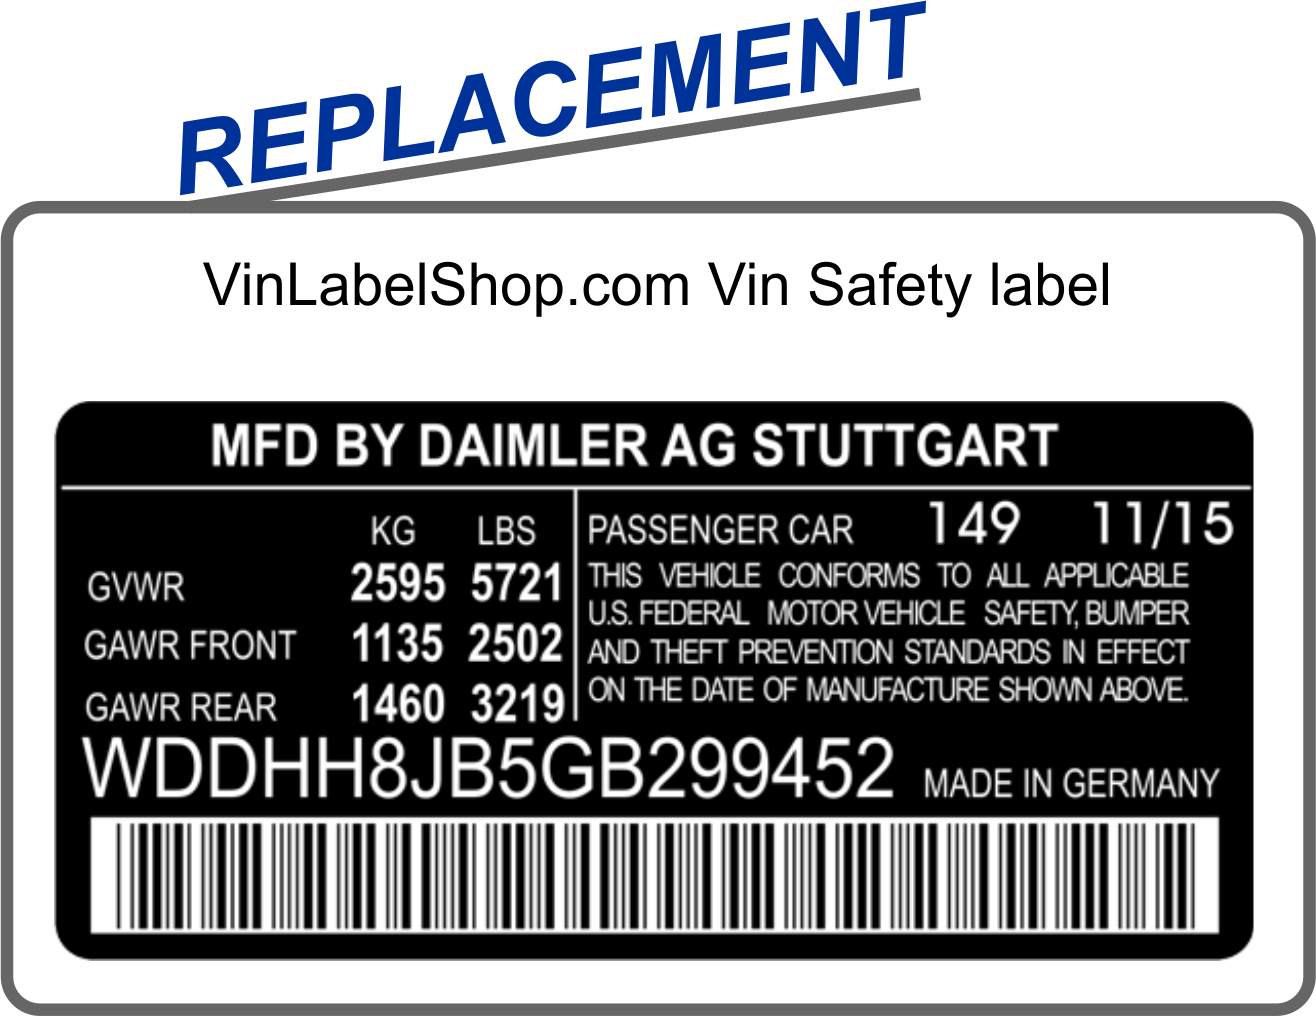 Replacement vin label for the auto body collision repair industry